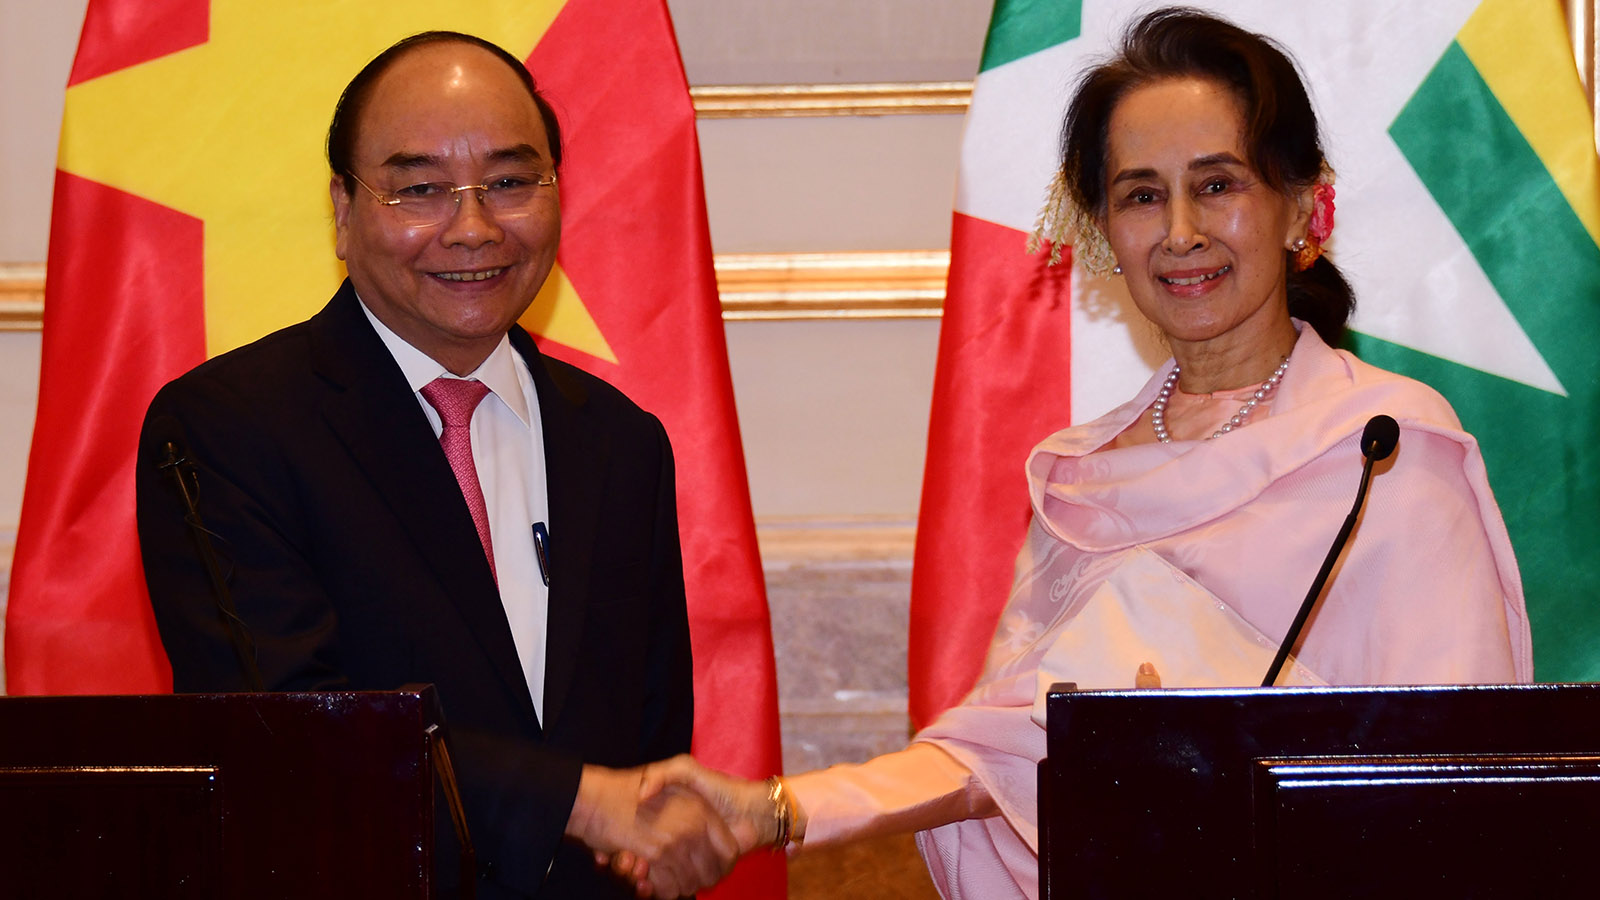 State Counsellor Daw Aung San Suu Kyi shakes hand with Prime Minister Nguyen Xuan Phuc of the Socialist Republic of Viet Nam at the press conference.Photo: MNA